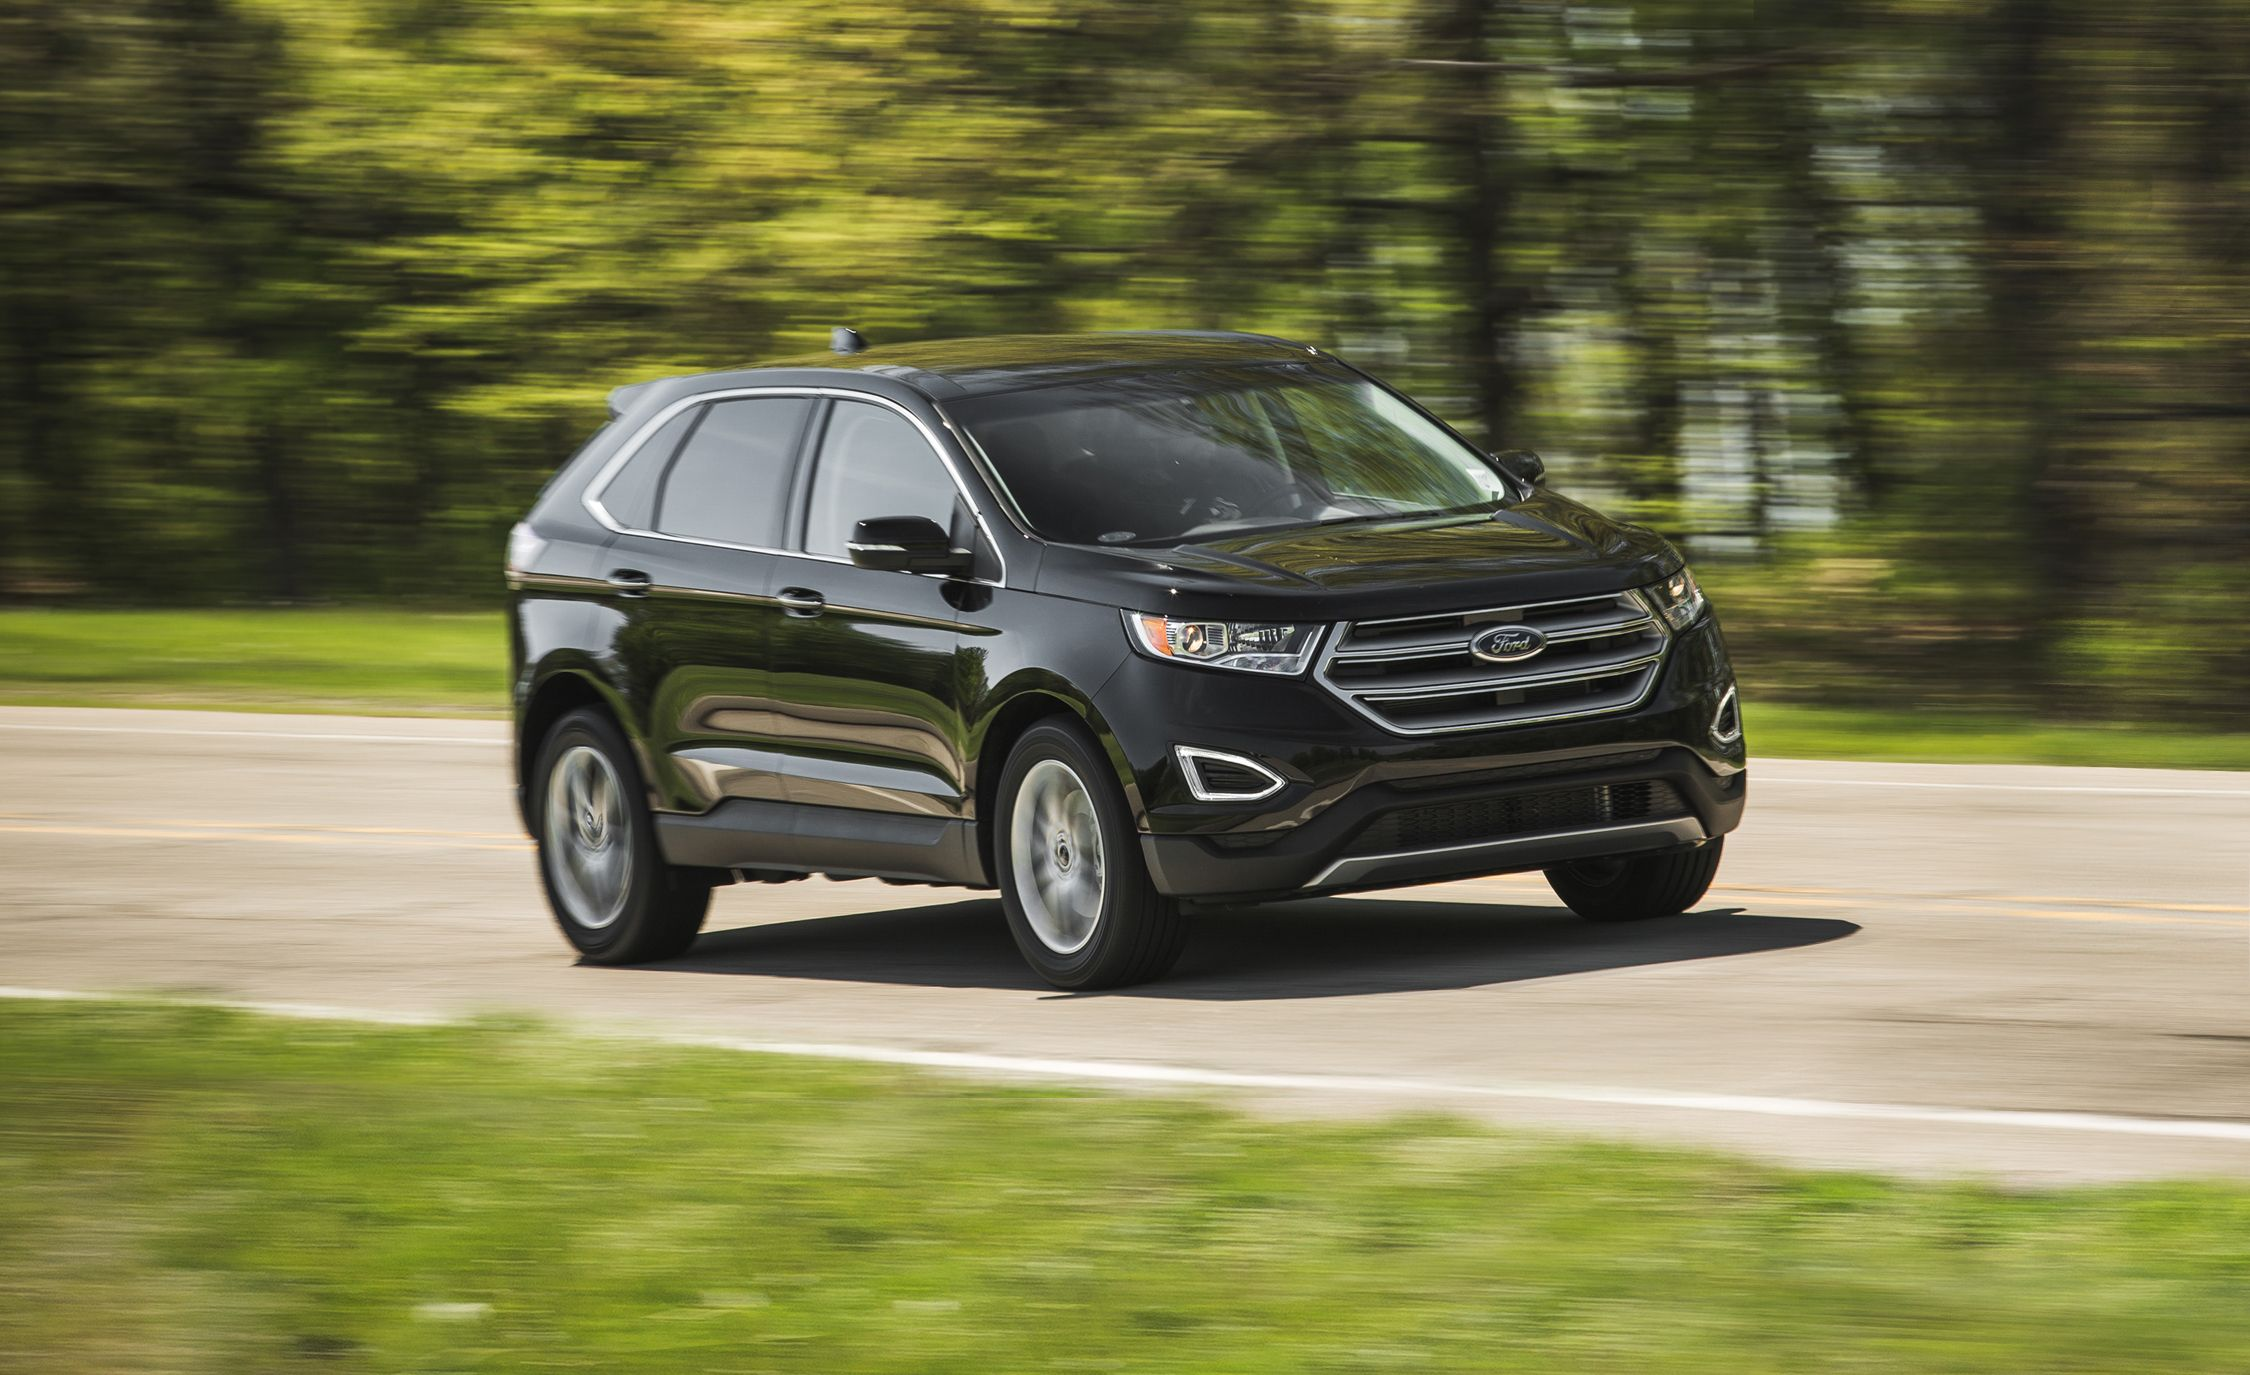 ford edge reviews ford edge price photos and specs car and driver. Black Bedroom Furniture Sets. Home Design Ideas